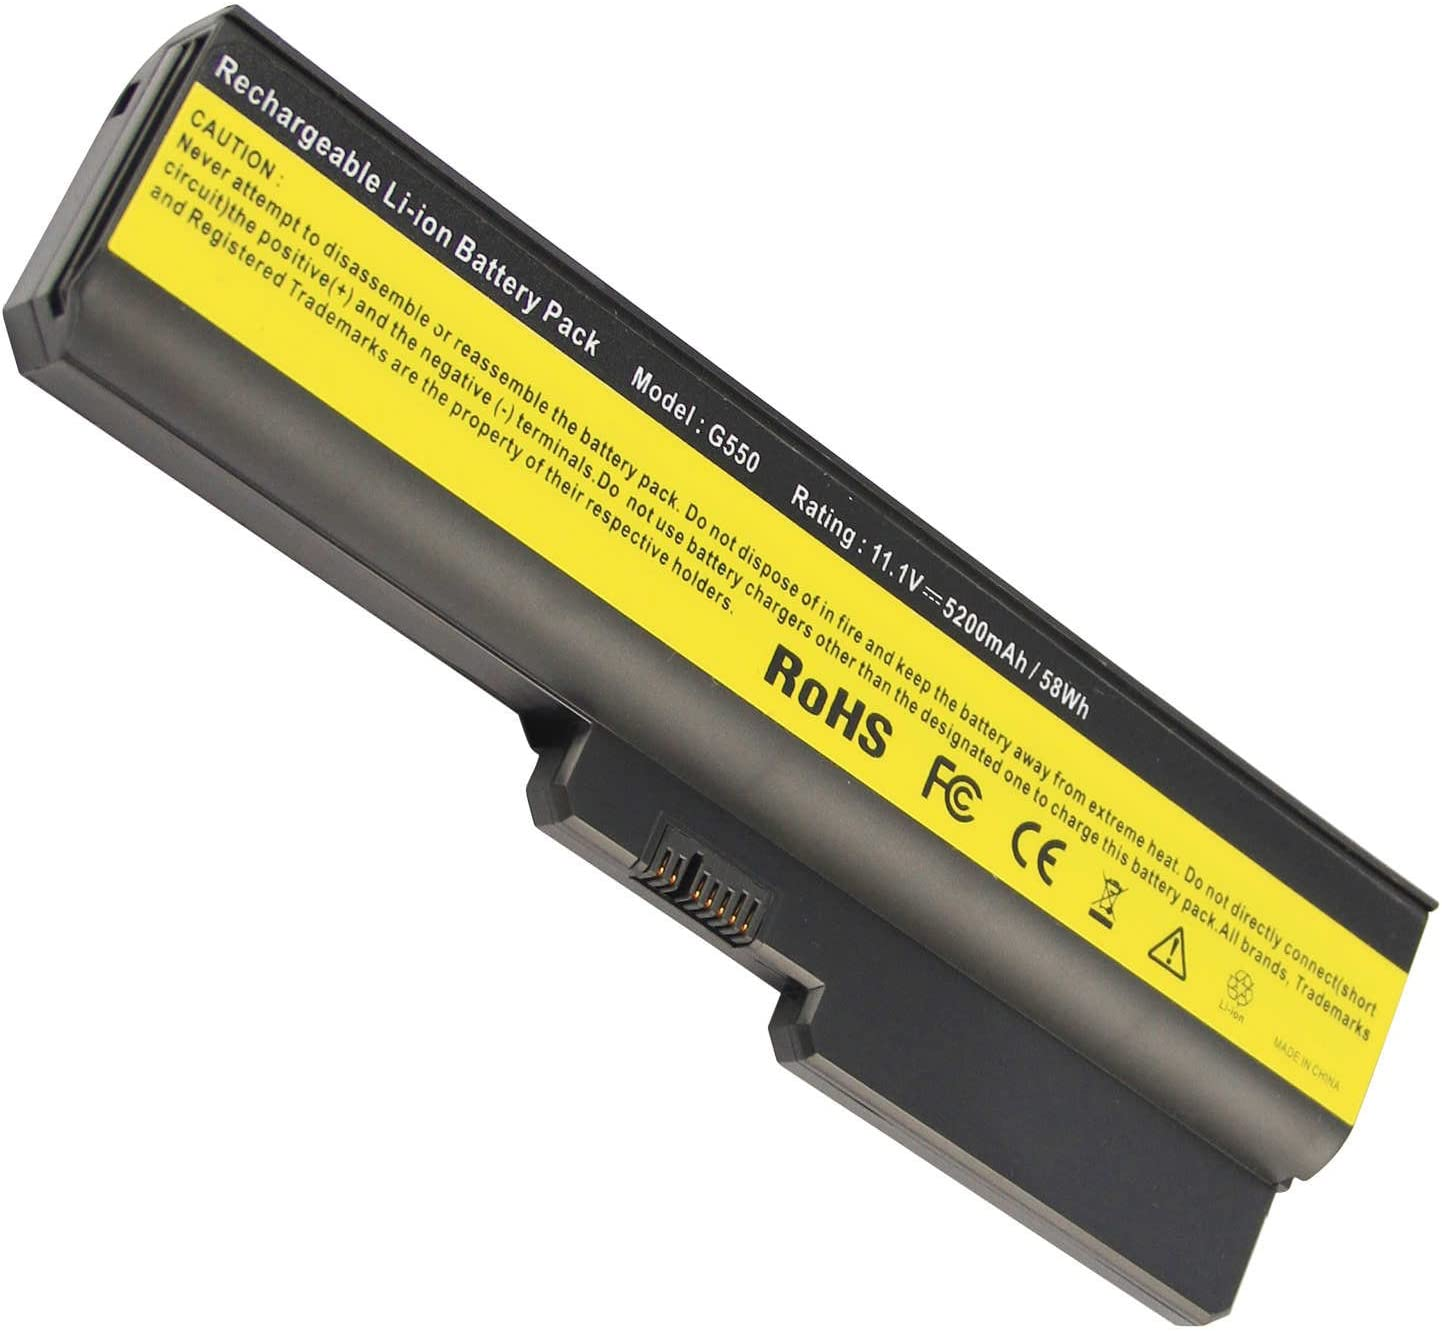 Fancy Buying 6-Cell Laptop Battery for Lenovo IdeaPad 3000 G530 / DC T3400 / 3000 G555 / 3000 N500 / 3000 N500 4233-52U / G430 /G450/ G455A / G530 / G550,P/N ASM 42T4728 / FRU 42T4585 / FRU 42T4727